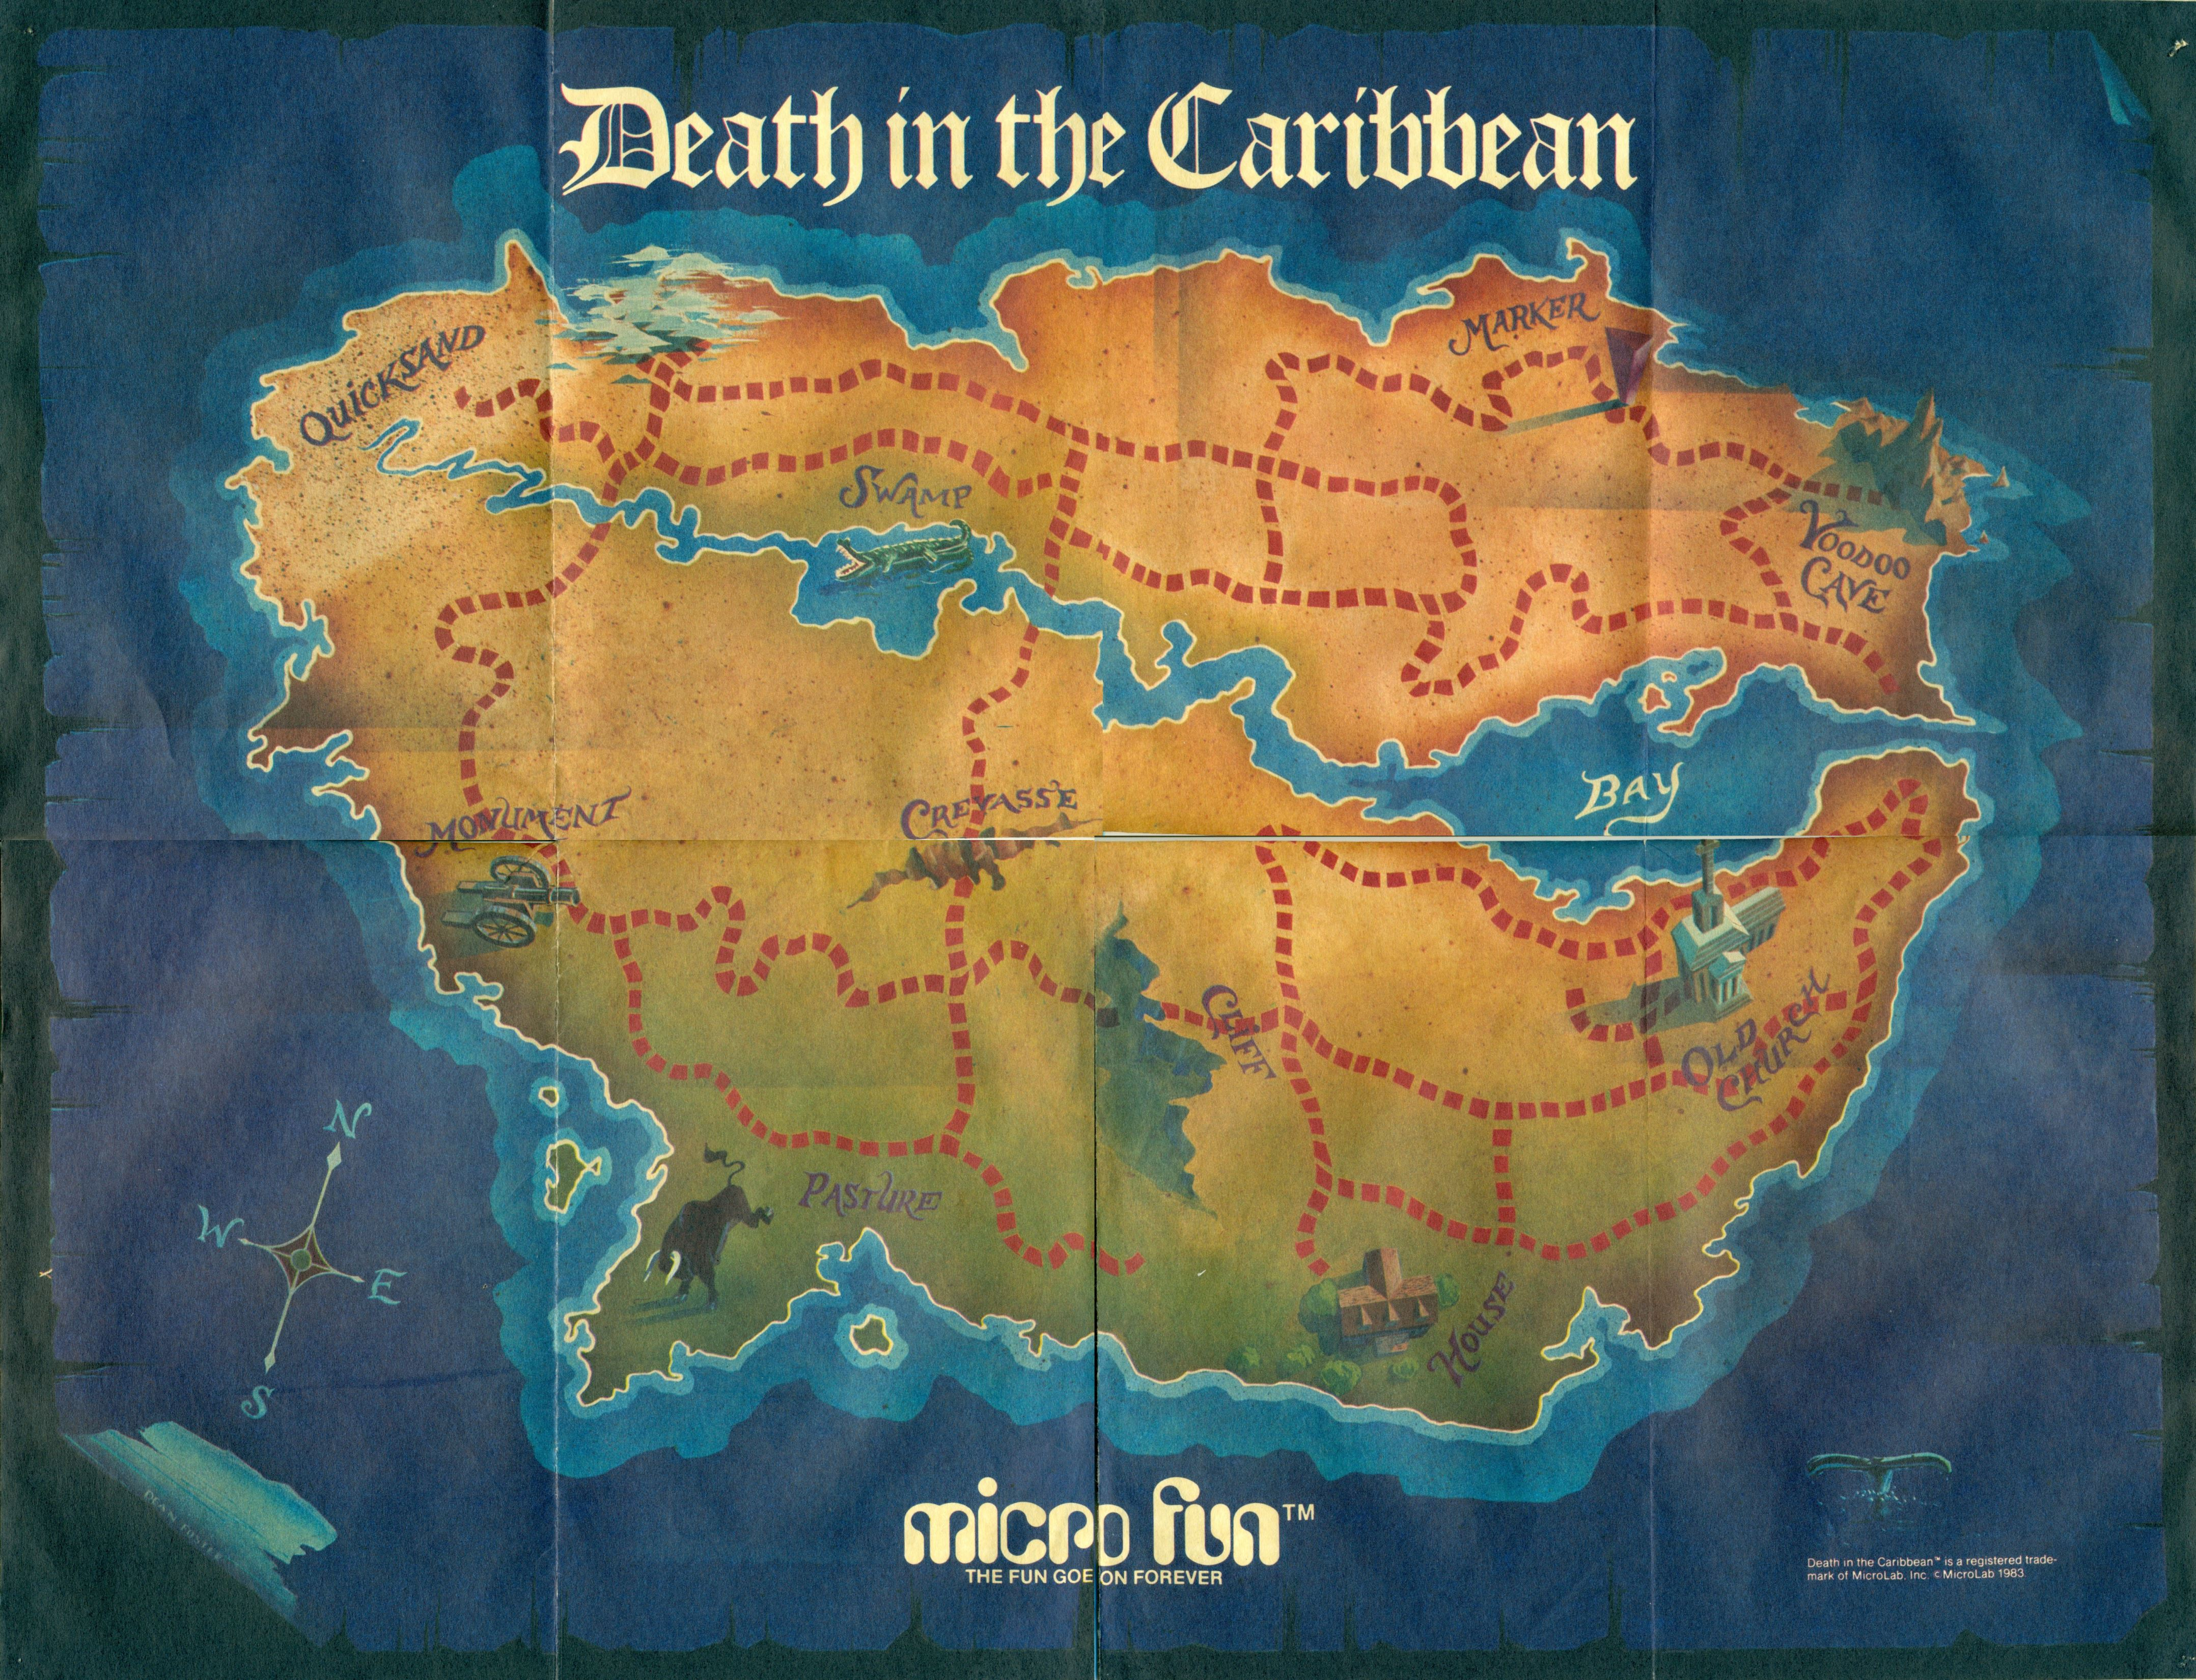 DeathInTheCaribbeanMap_4300x3300